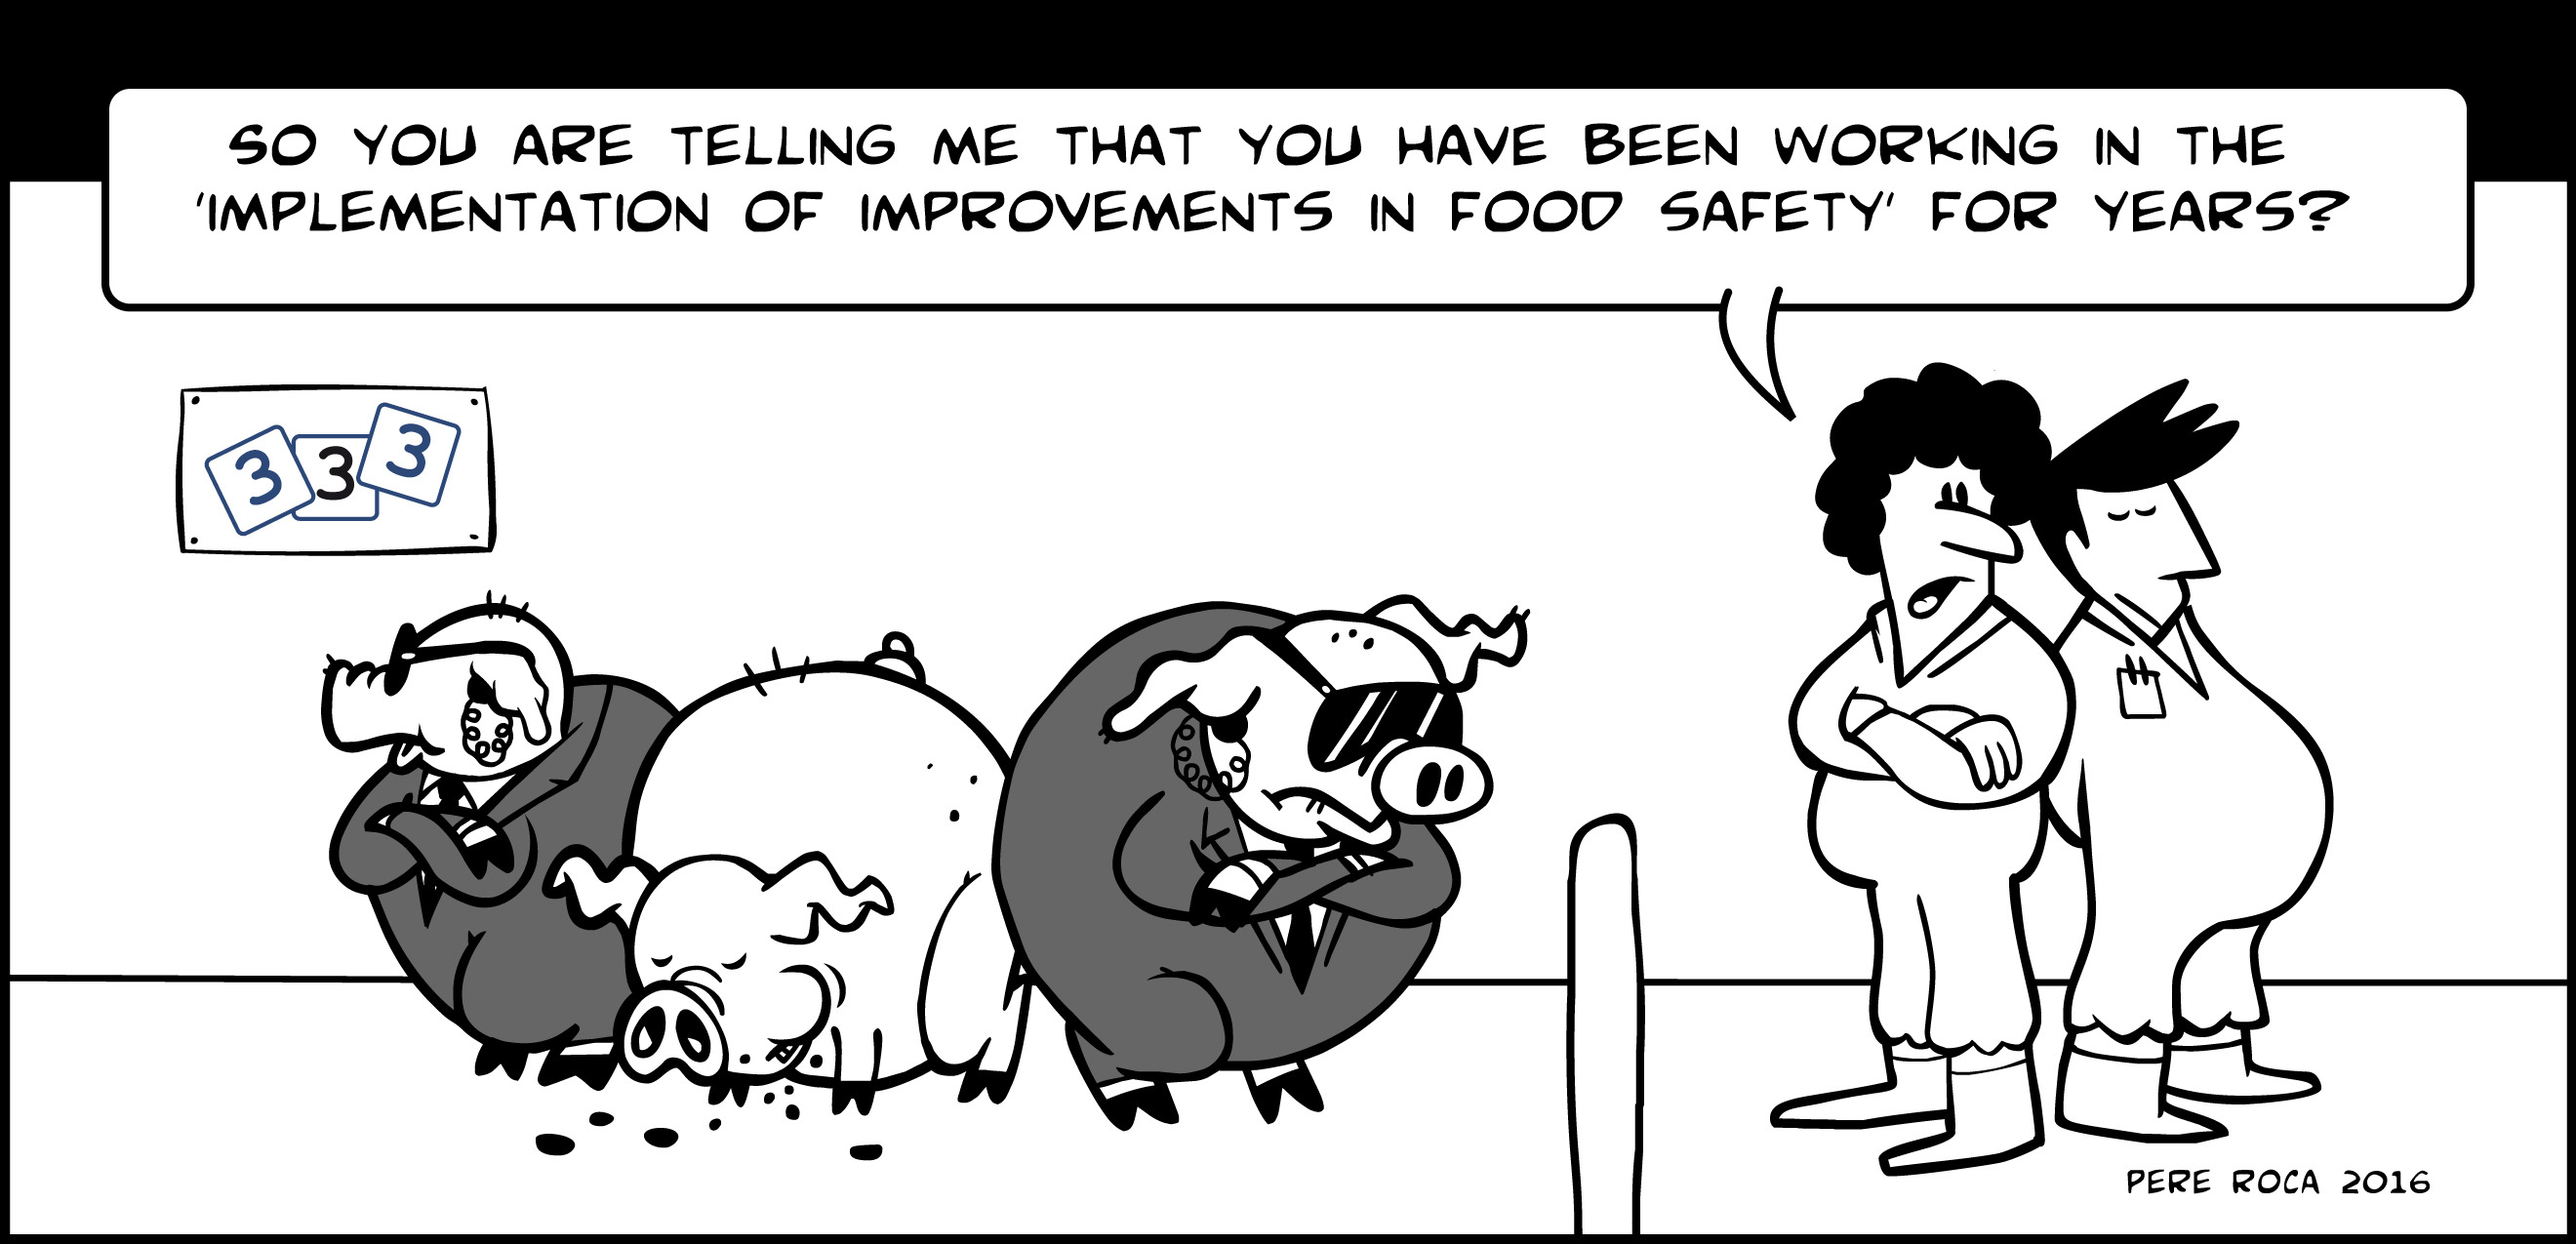 Food safety in the pig sector